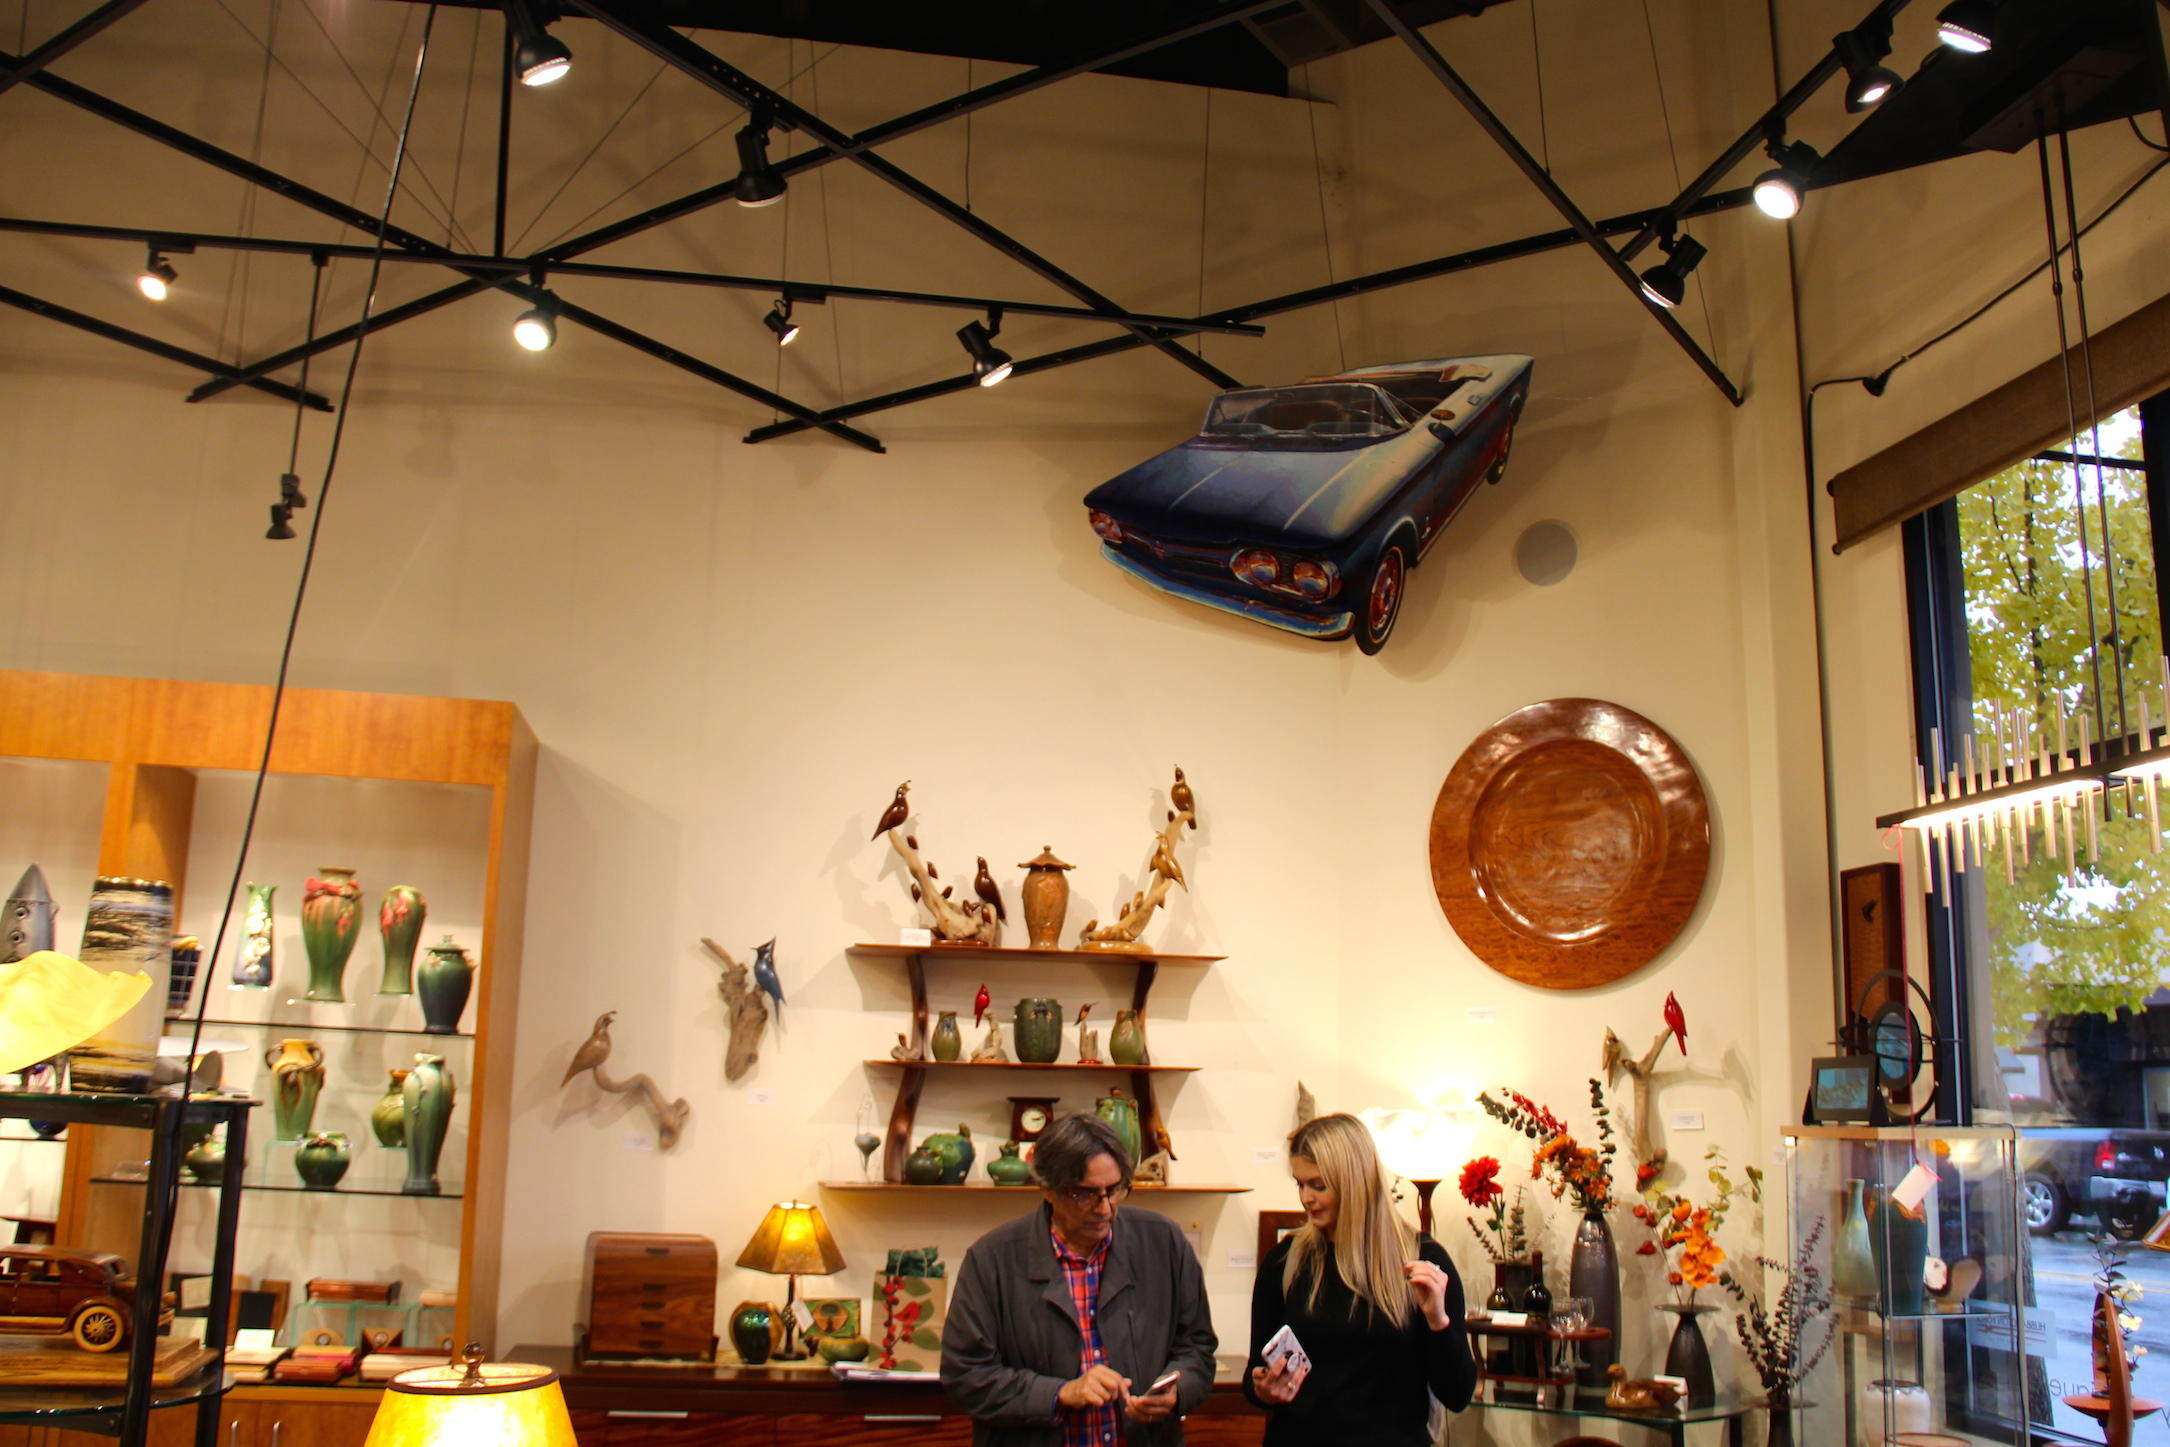 Mesmerizing 3-D paintings and California artisan furniture at ... on gallery f, gallery j, gallery l, gallery c, gallery a, gallery g, gallery n, gallery h, gallery p, gallery b, gallery i, gallery s, gallery v, gallery q, gallery e, gallery m, gallery k,